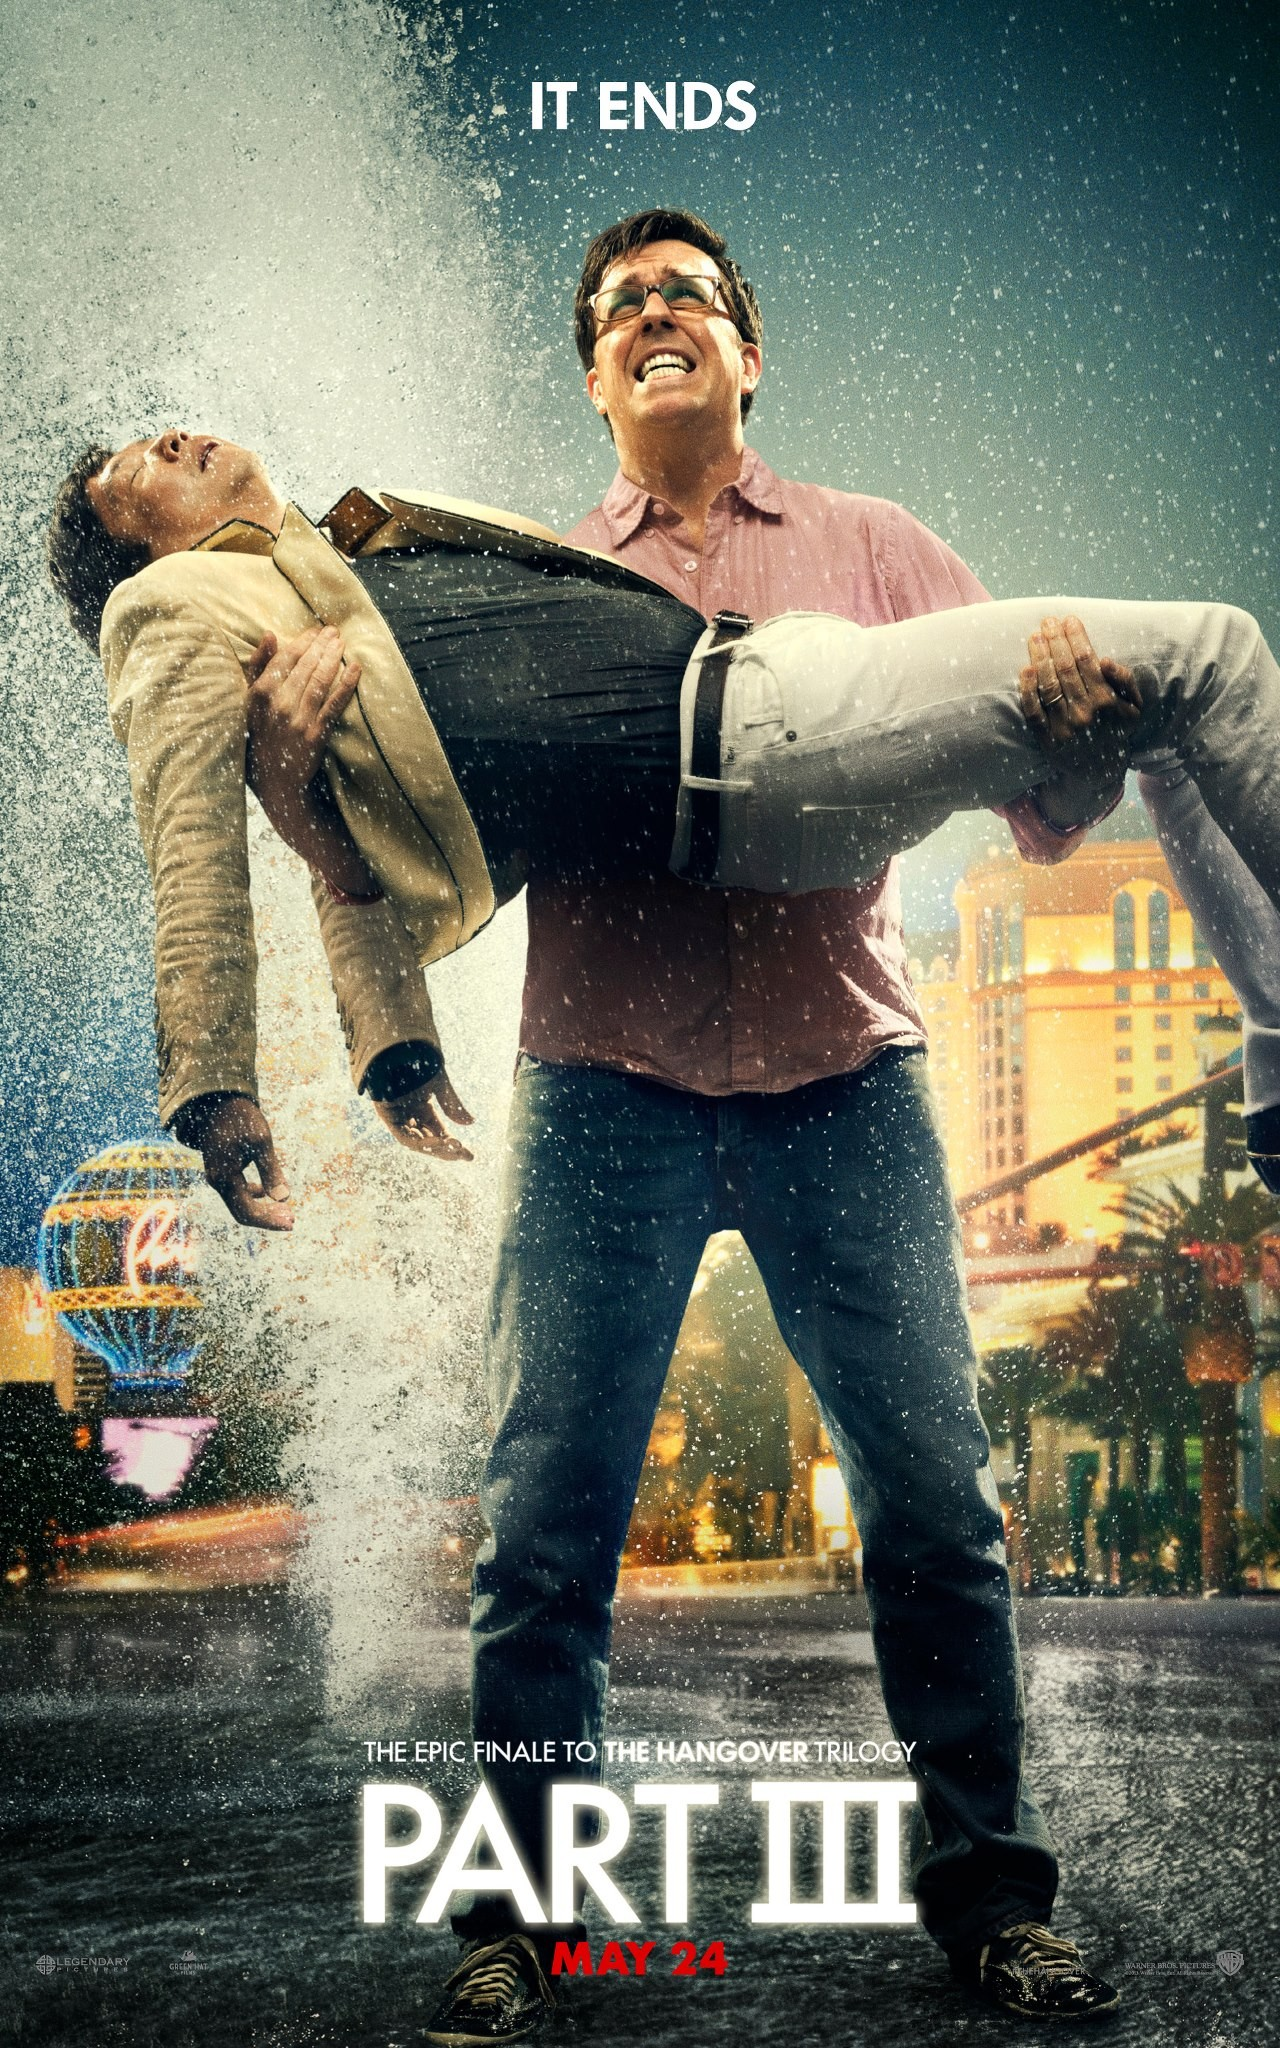 The-Hangover-Part-III-Poster-Ed-Helms-and-Ken-Jeong